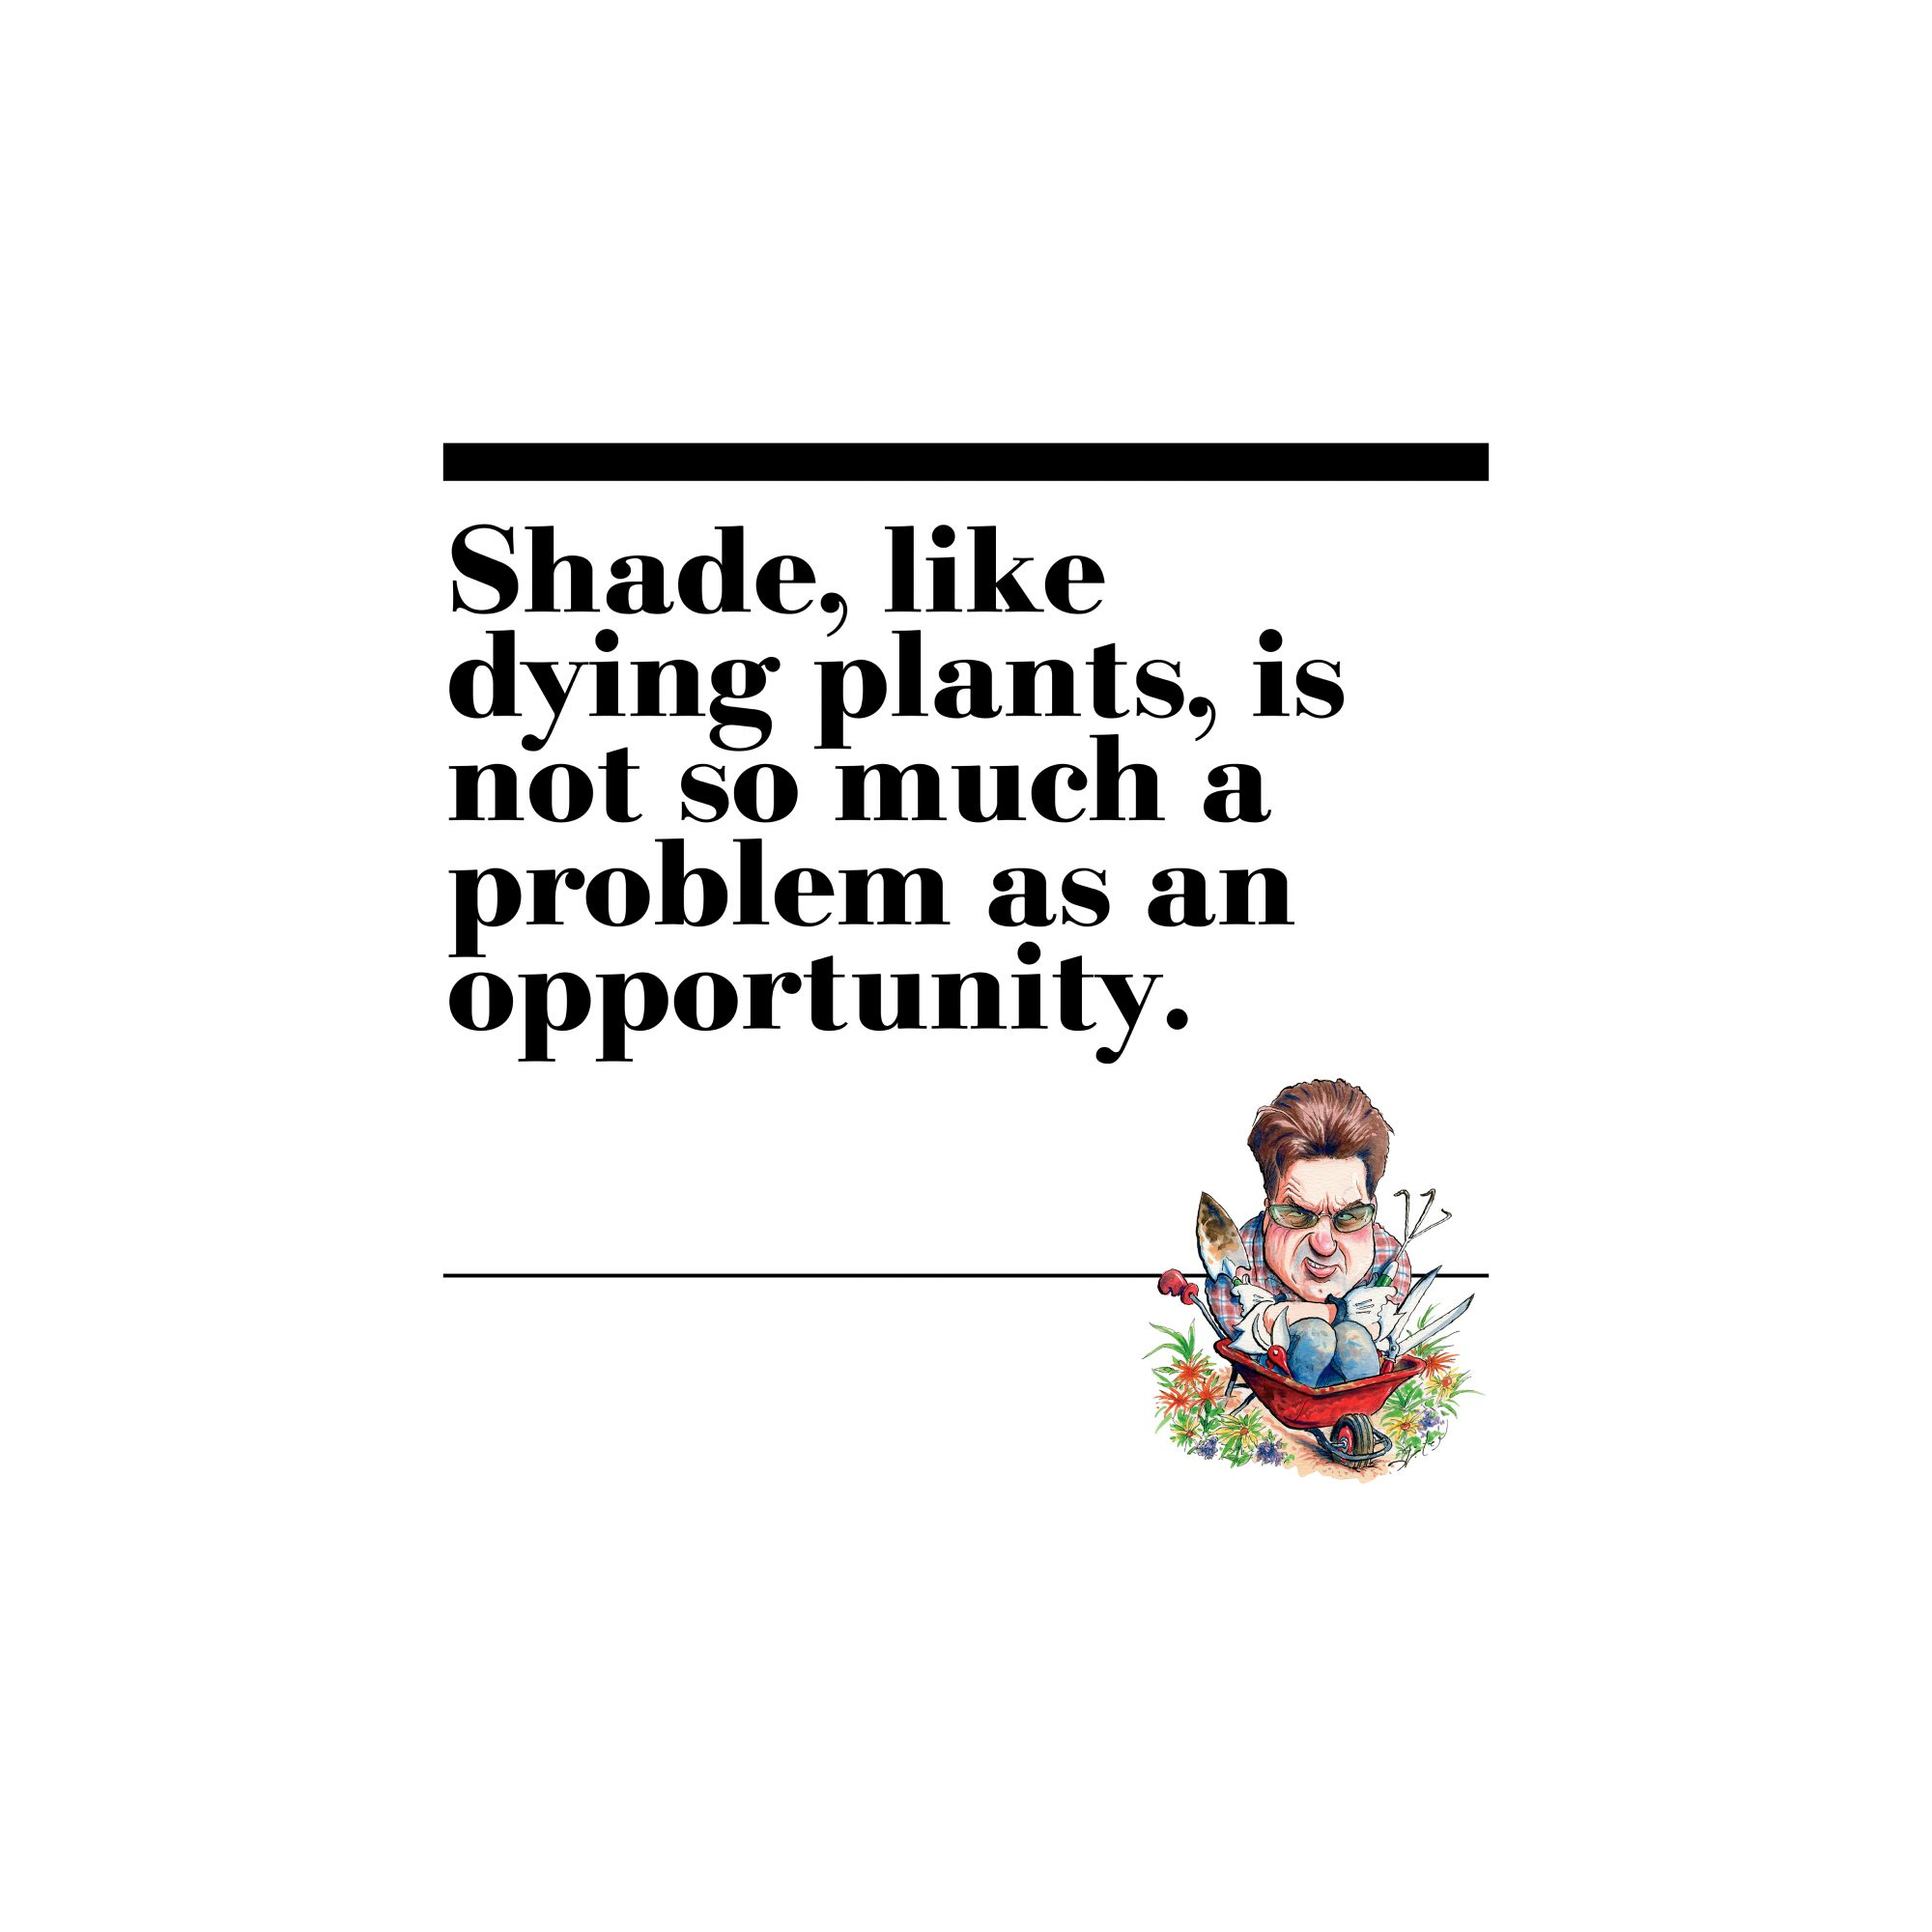 18. Shade, like dying plants, is not so much a problem as an opportunity.